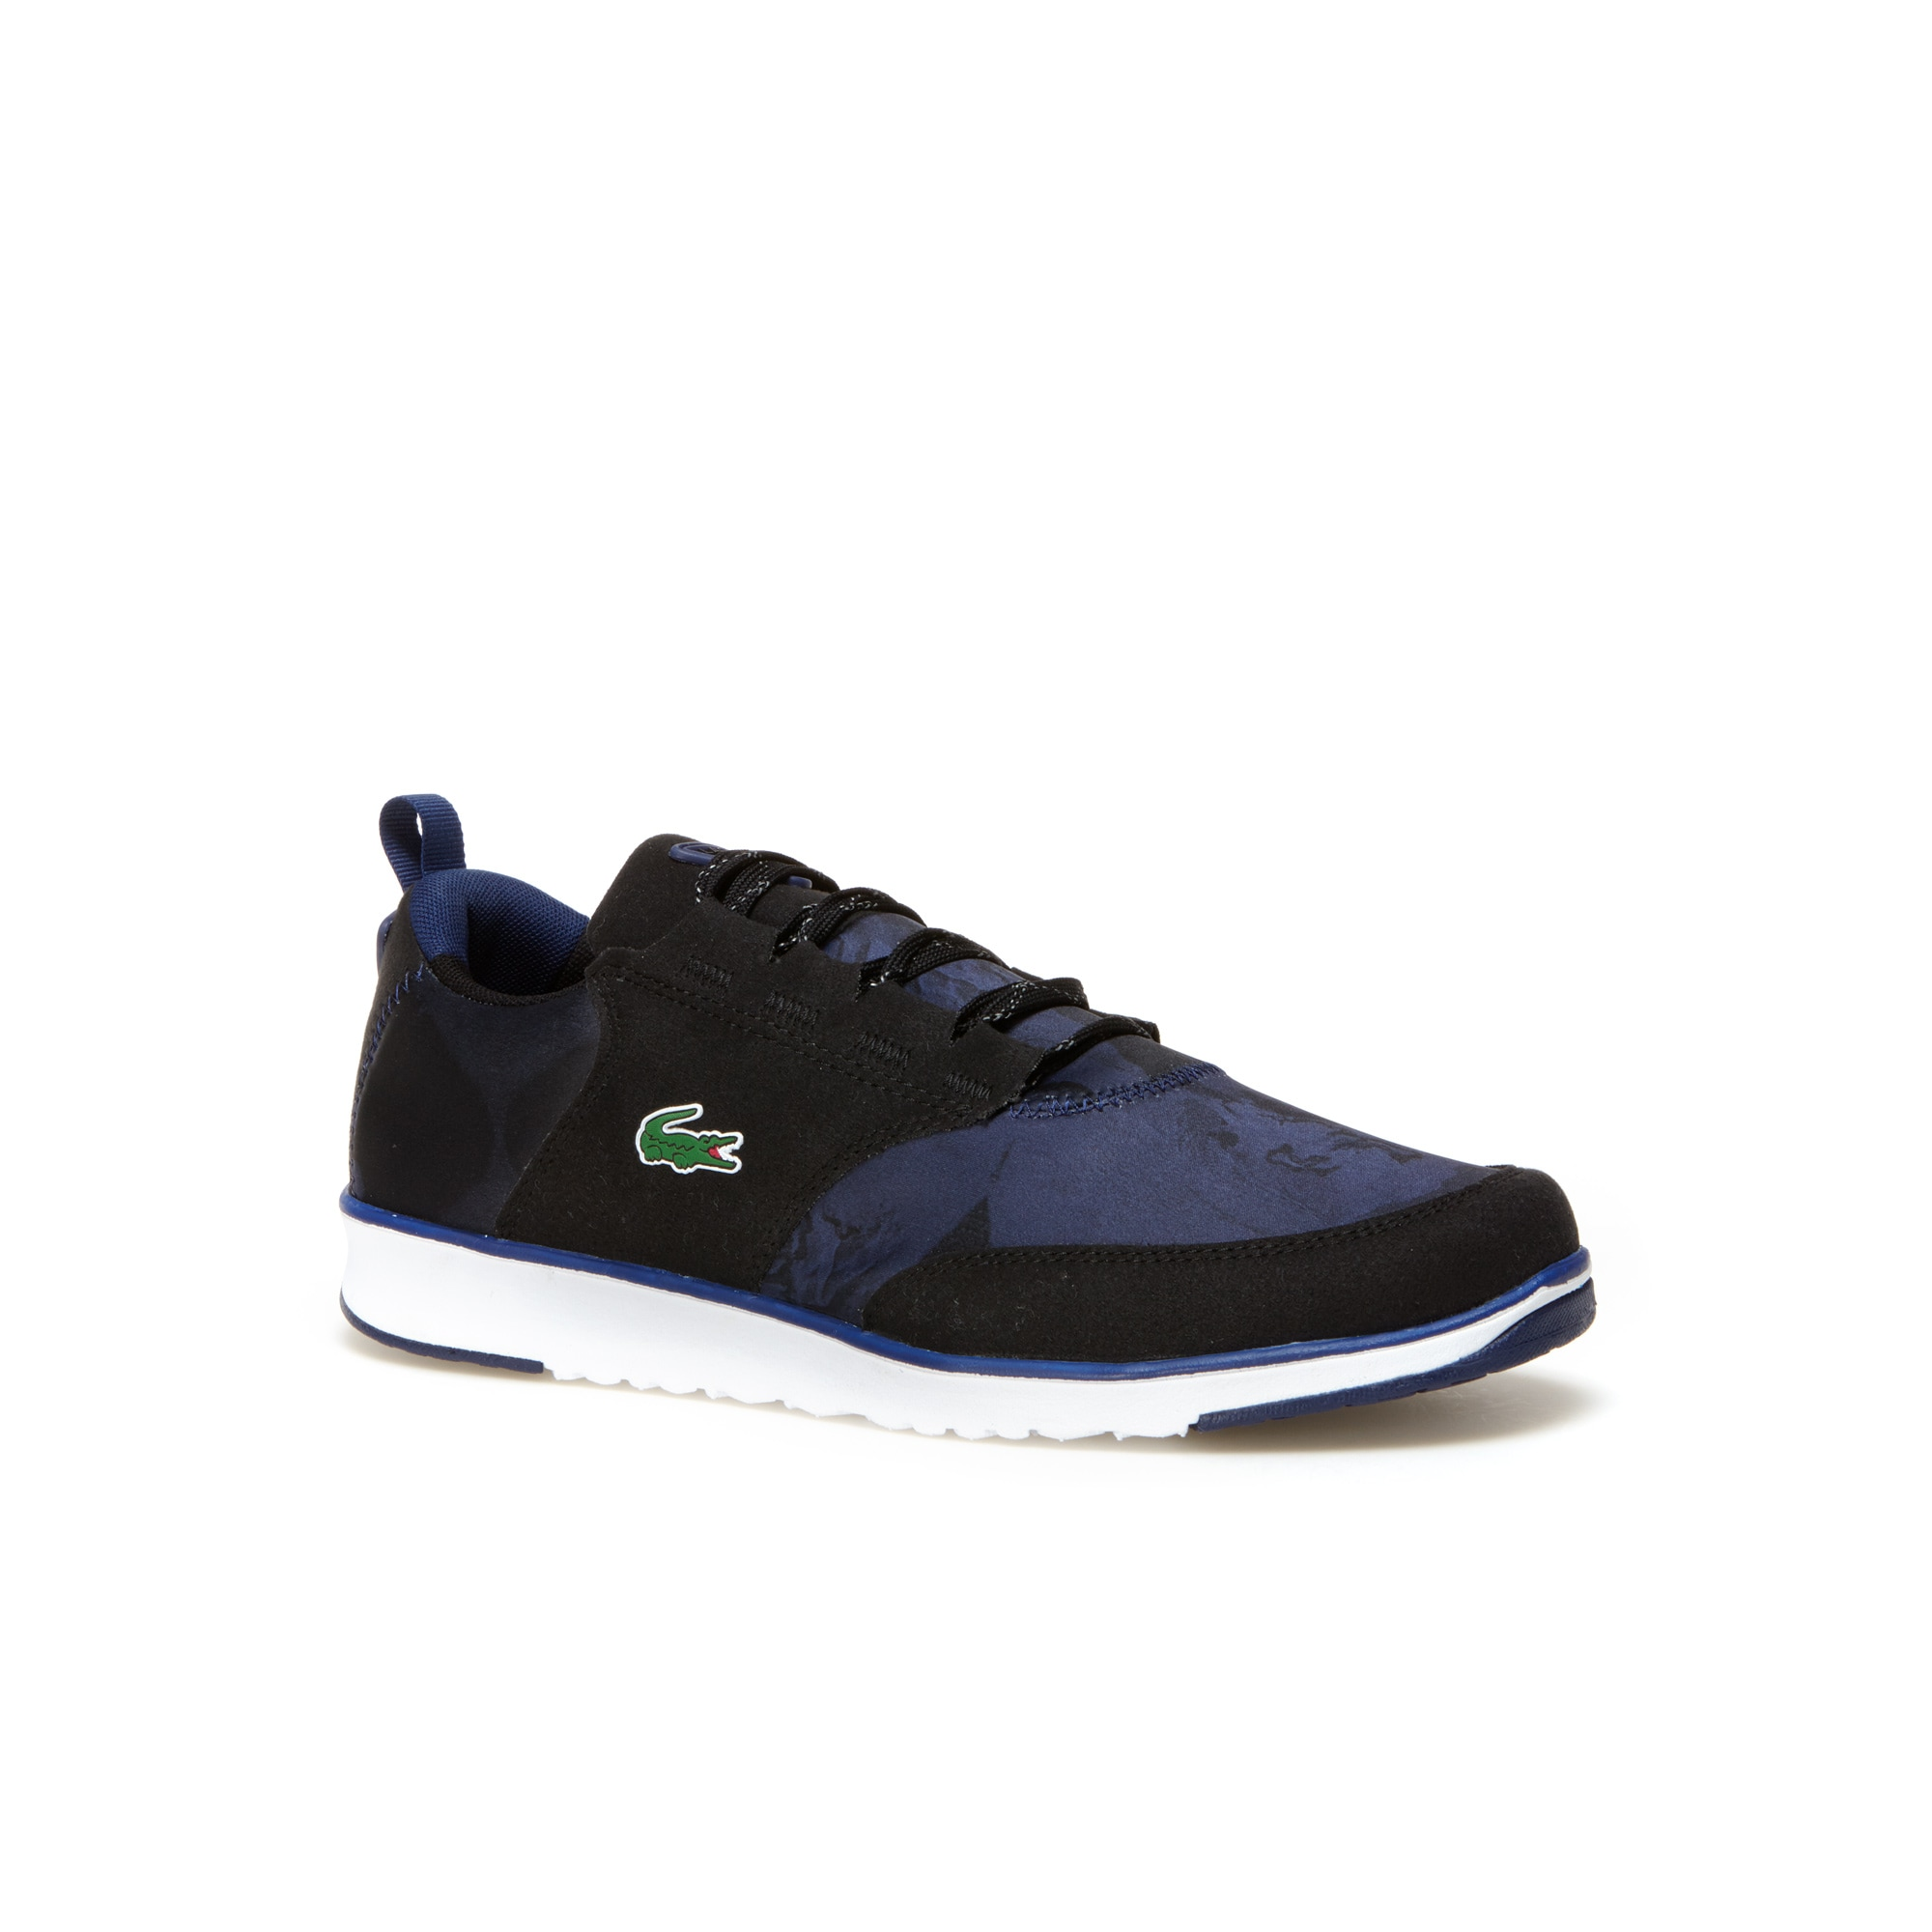 Sneakers L.ight in tessuto